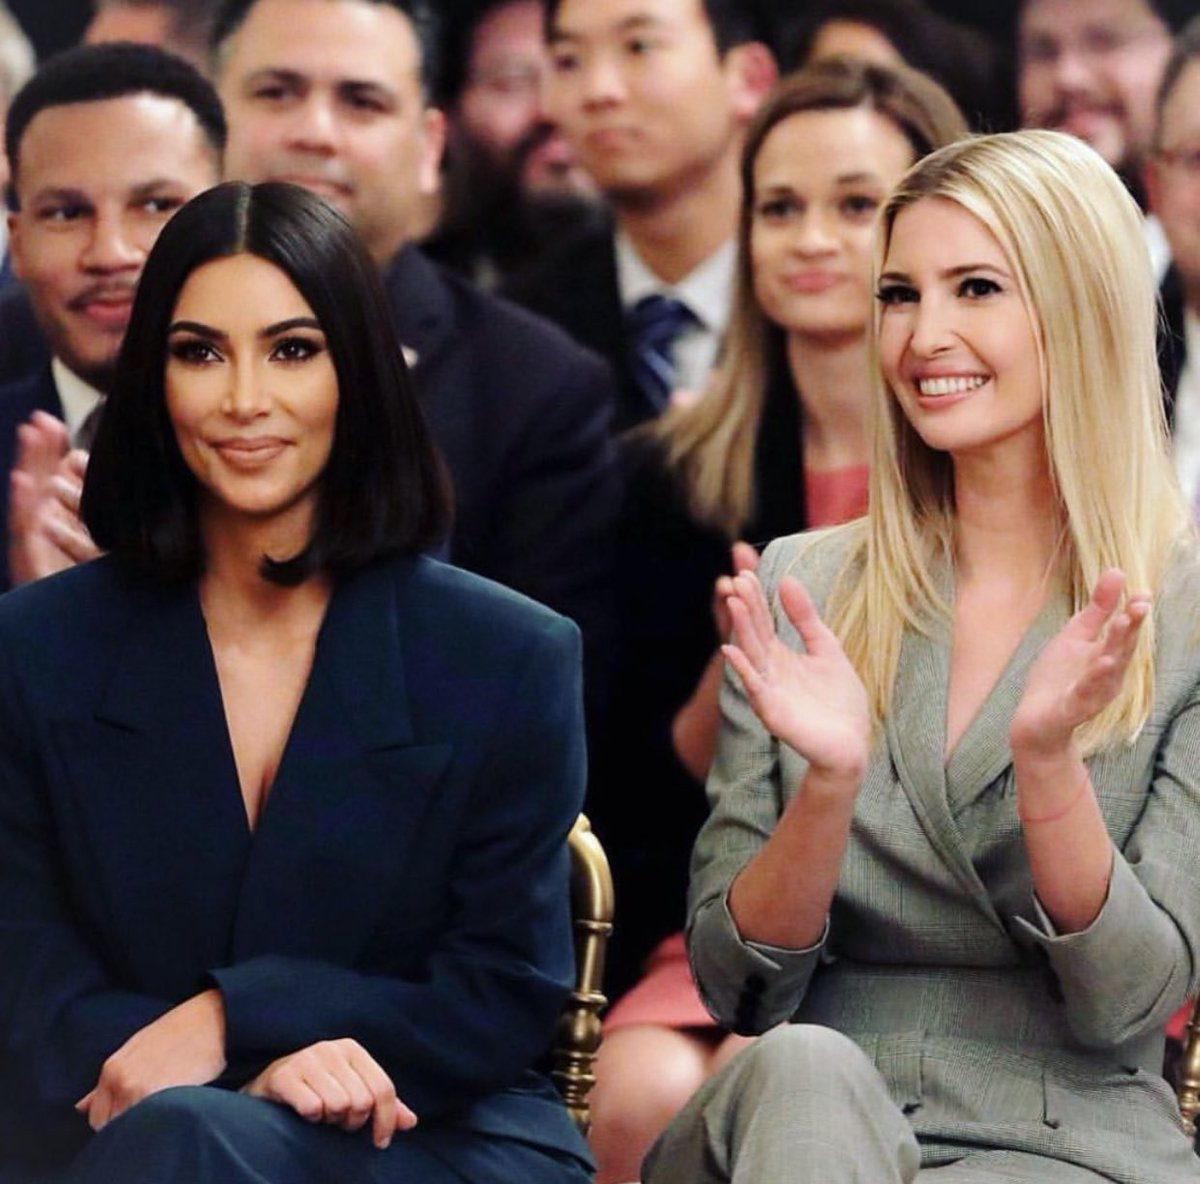 Thank you @KimKardashian for your passionate advocacy of CJR and Second Chance hiring! https://t.co/CMV1t1hoaO